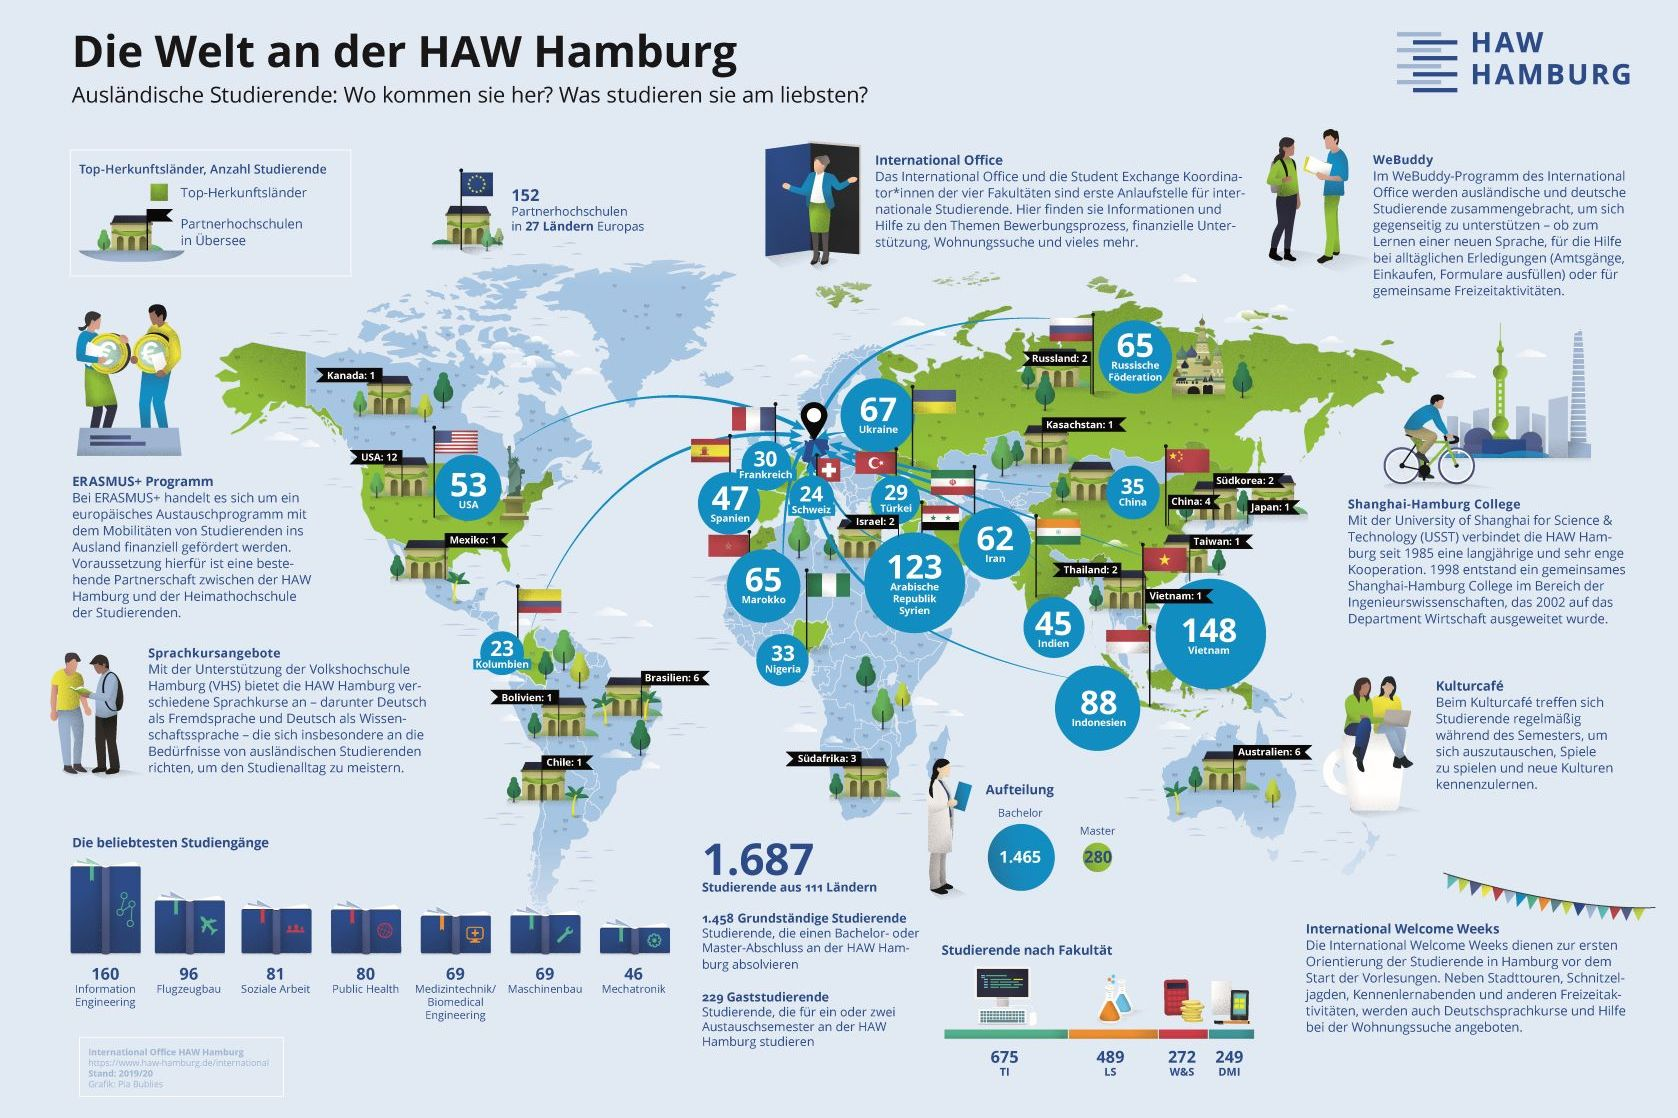 Copyright HAW Hamburg / International Office